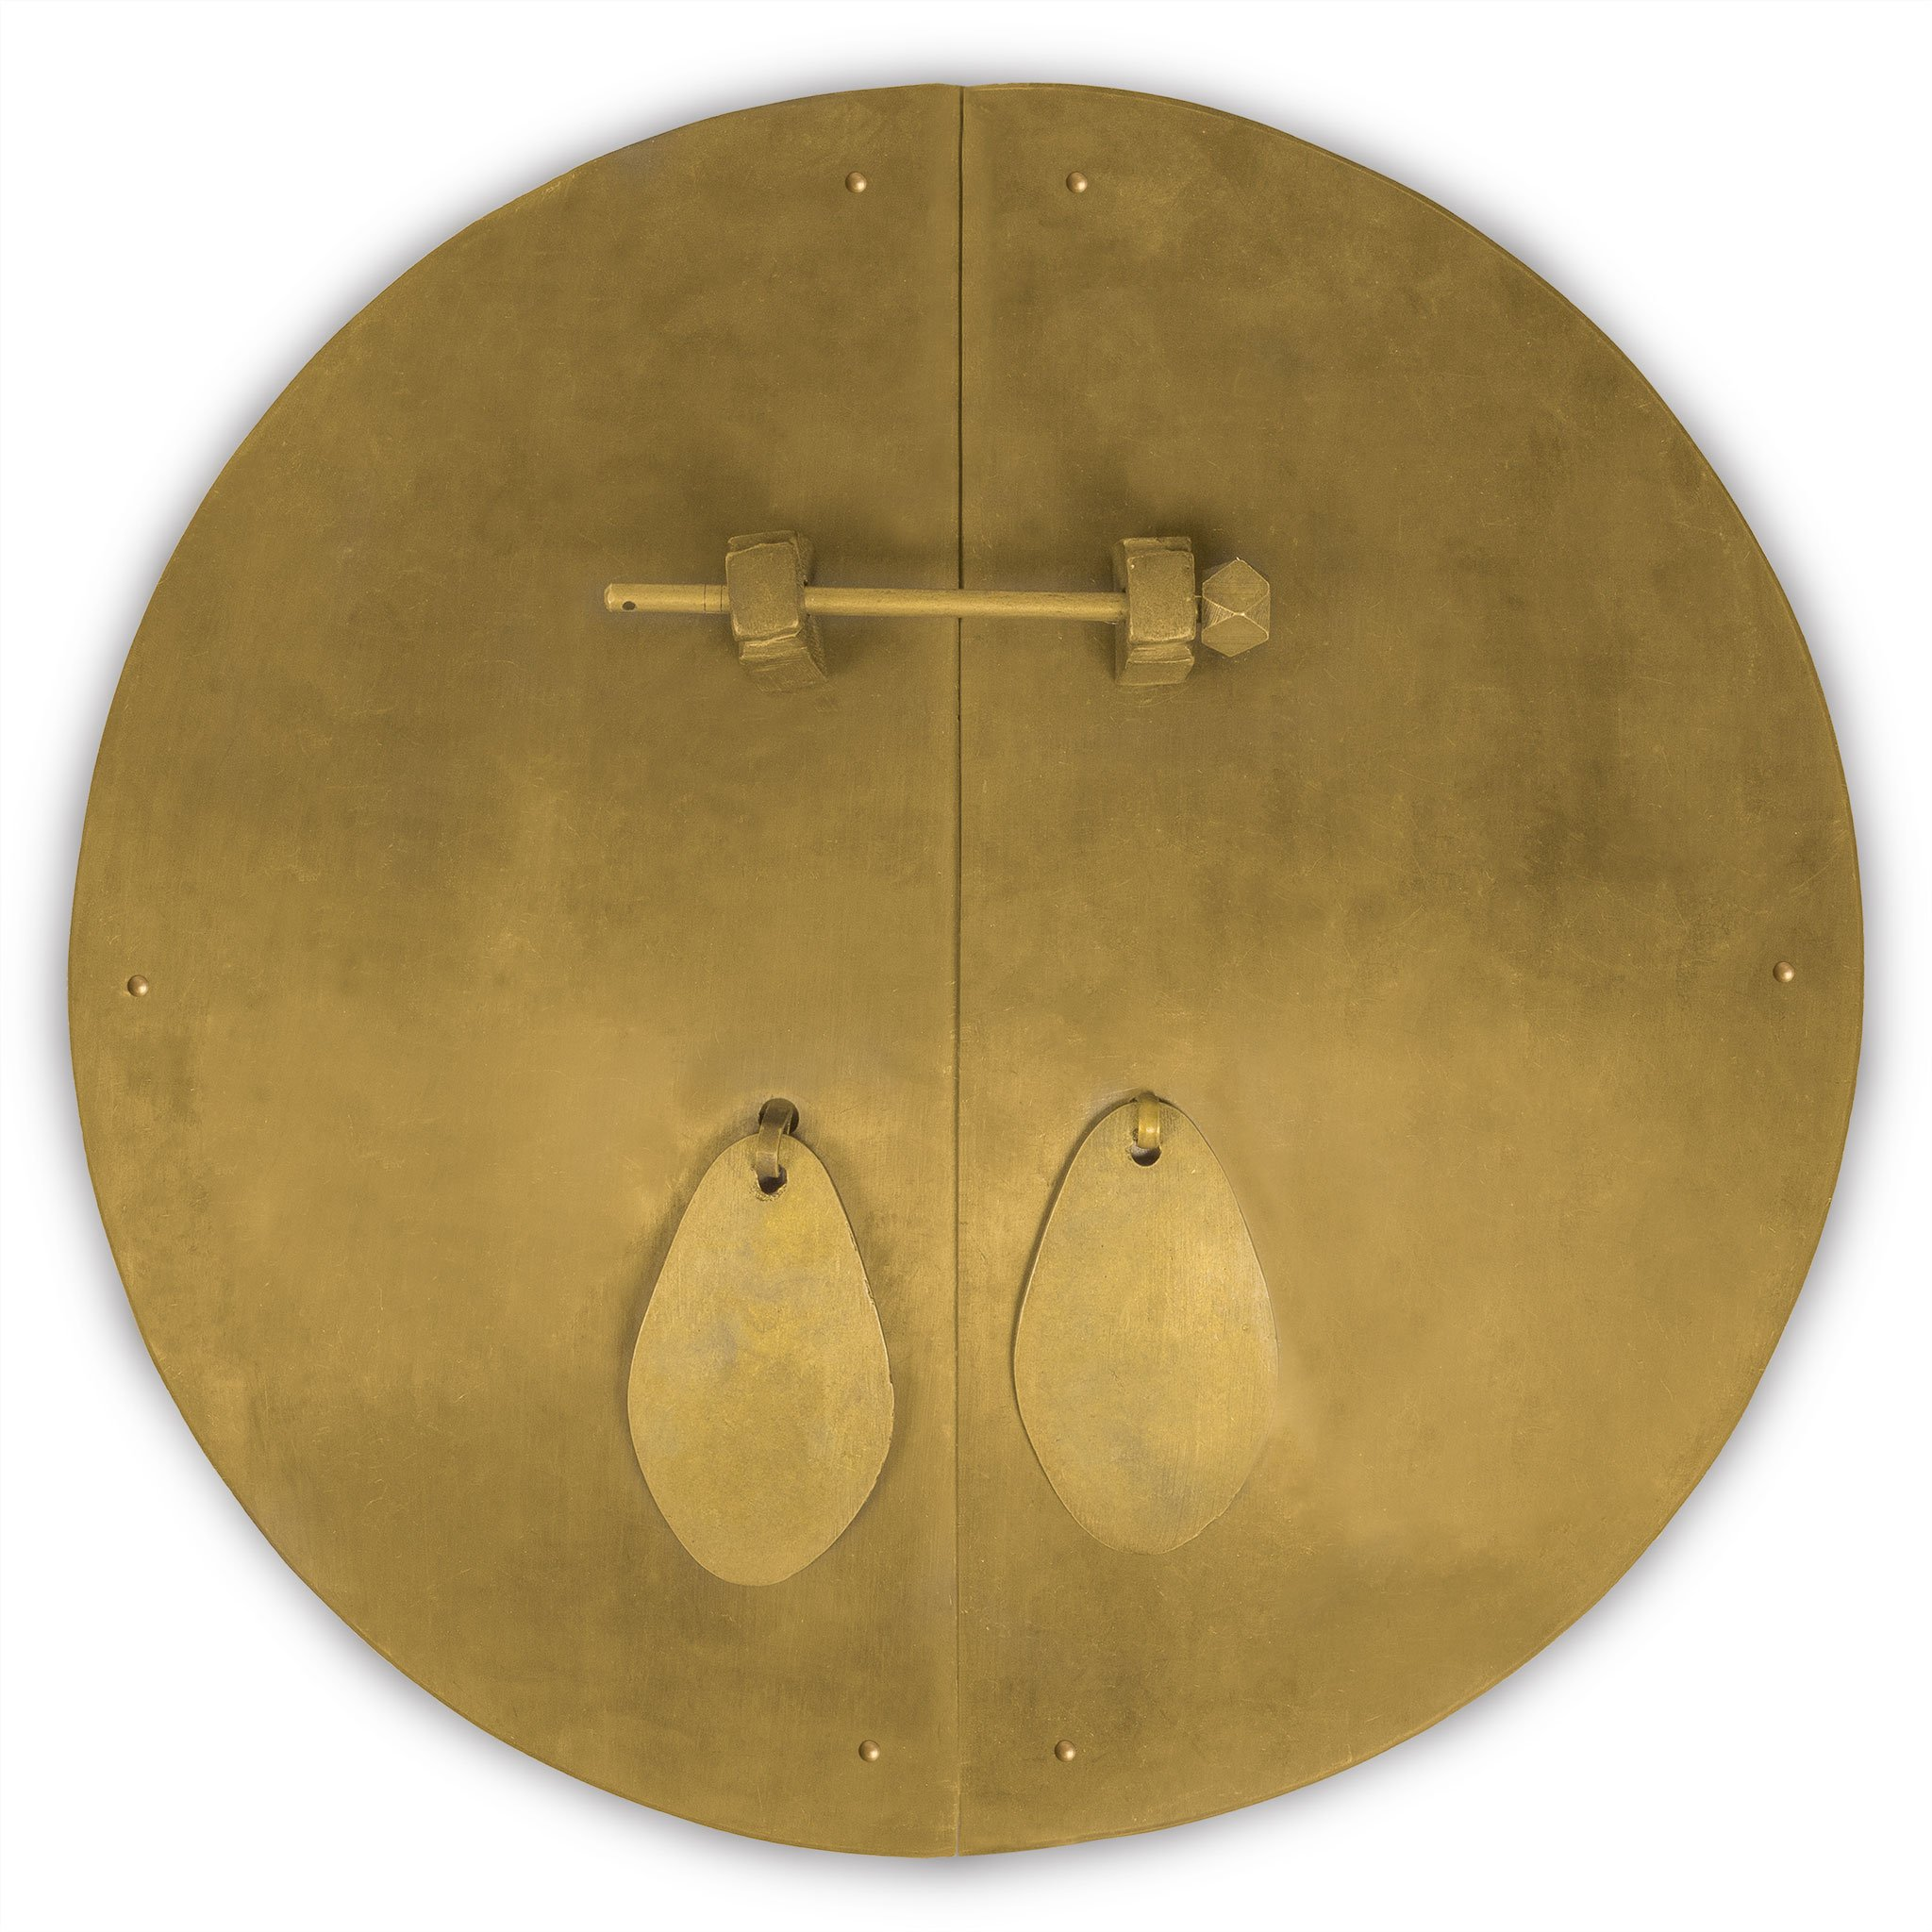 Chinese Brass Hardware Fat Cabinet Face Plate 14-1/2'' by Chinese Brass Hardware